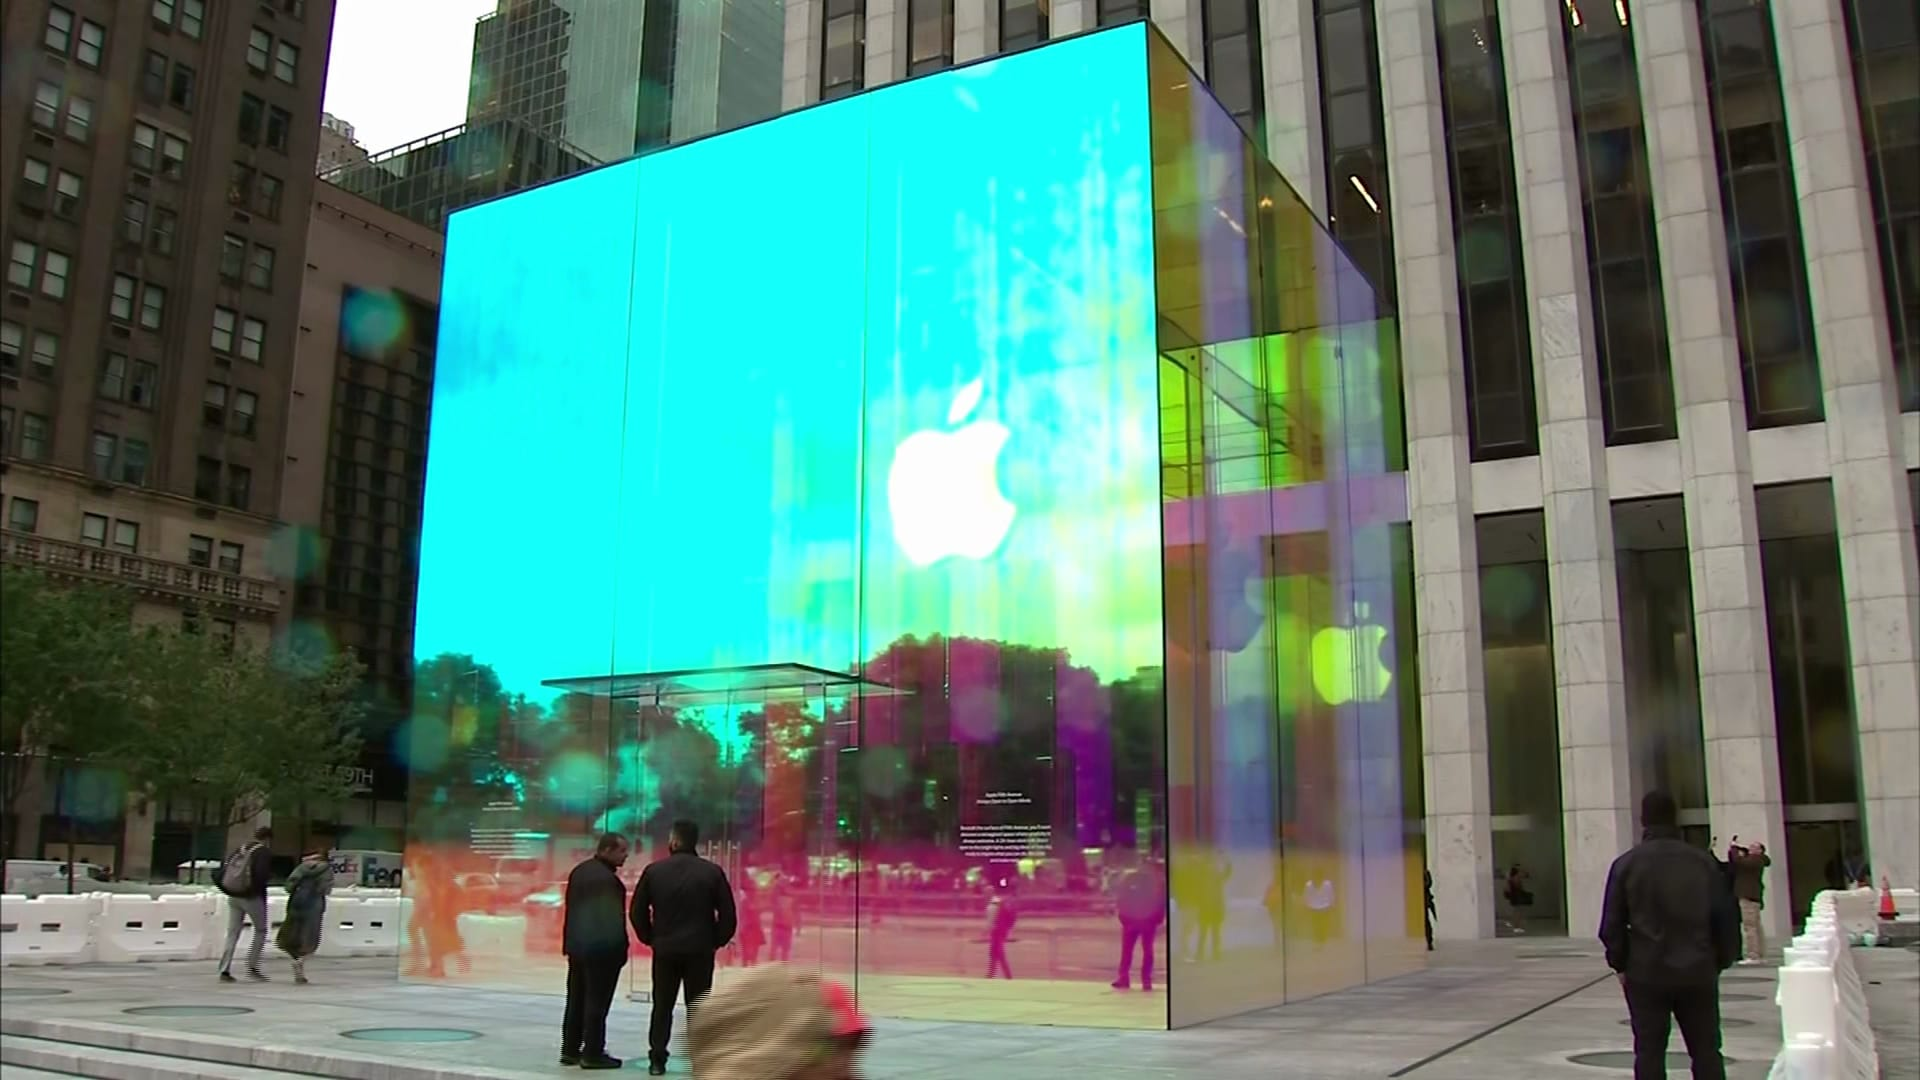 Apple New York flagship store renovated as rainbow cube